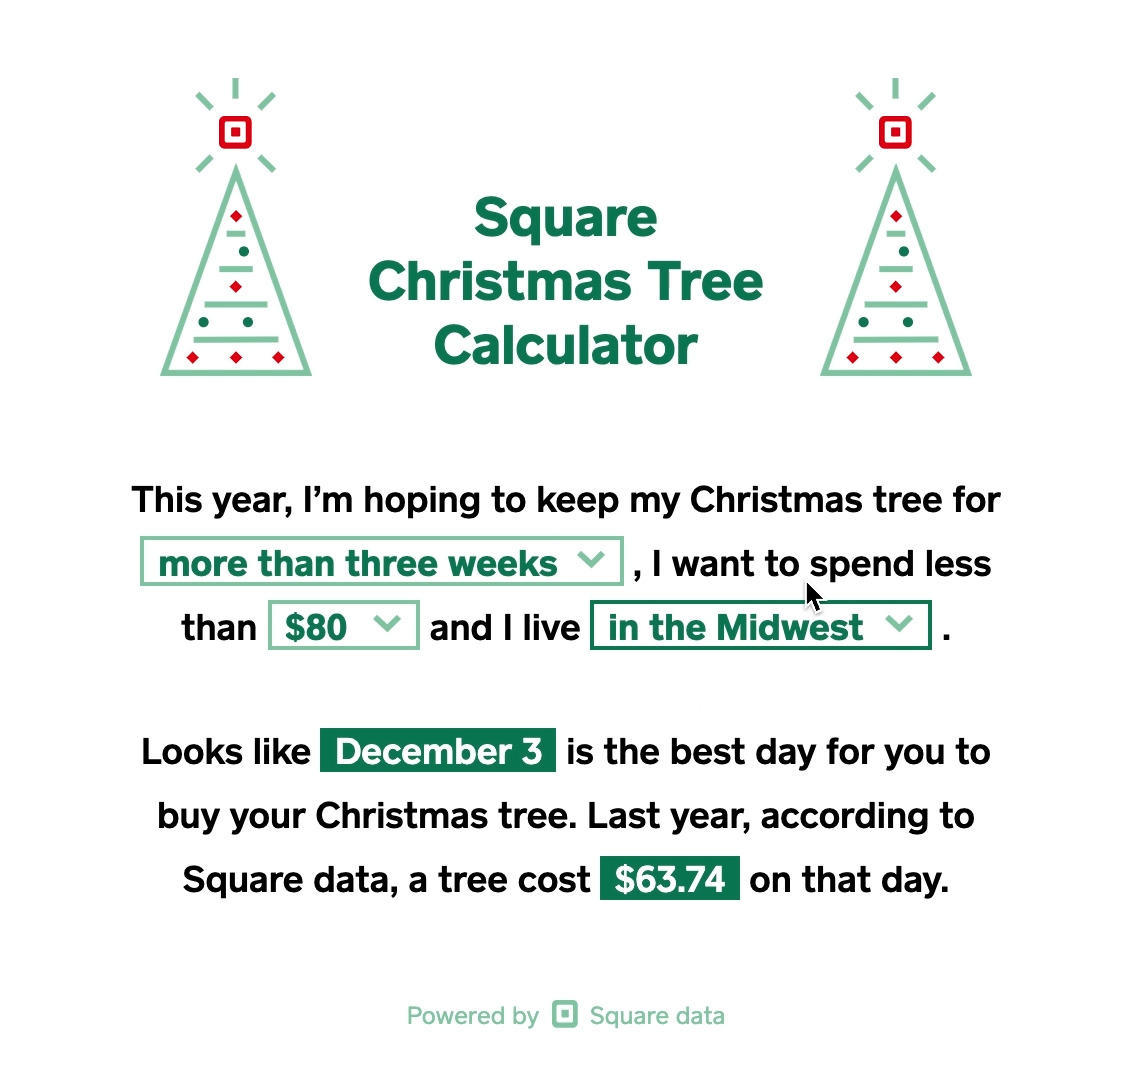 Predict the best day to buy your tree this season, using Square's Christmas Tree Calculator.